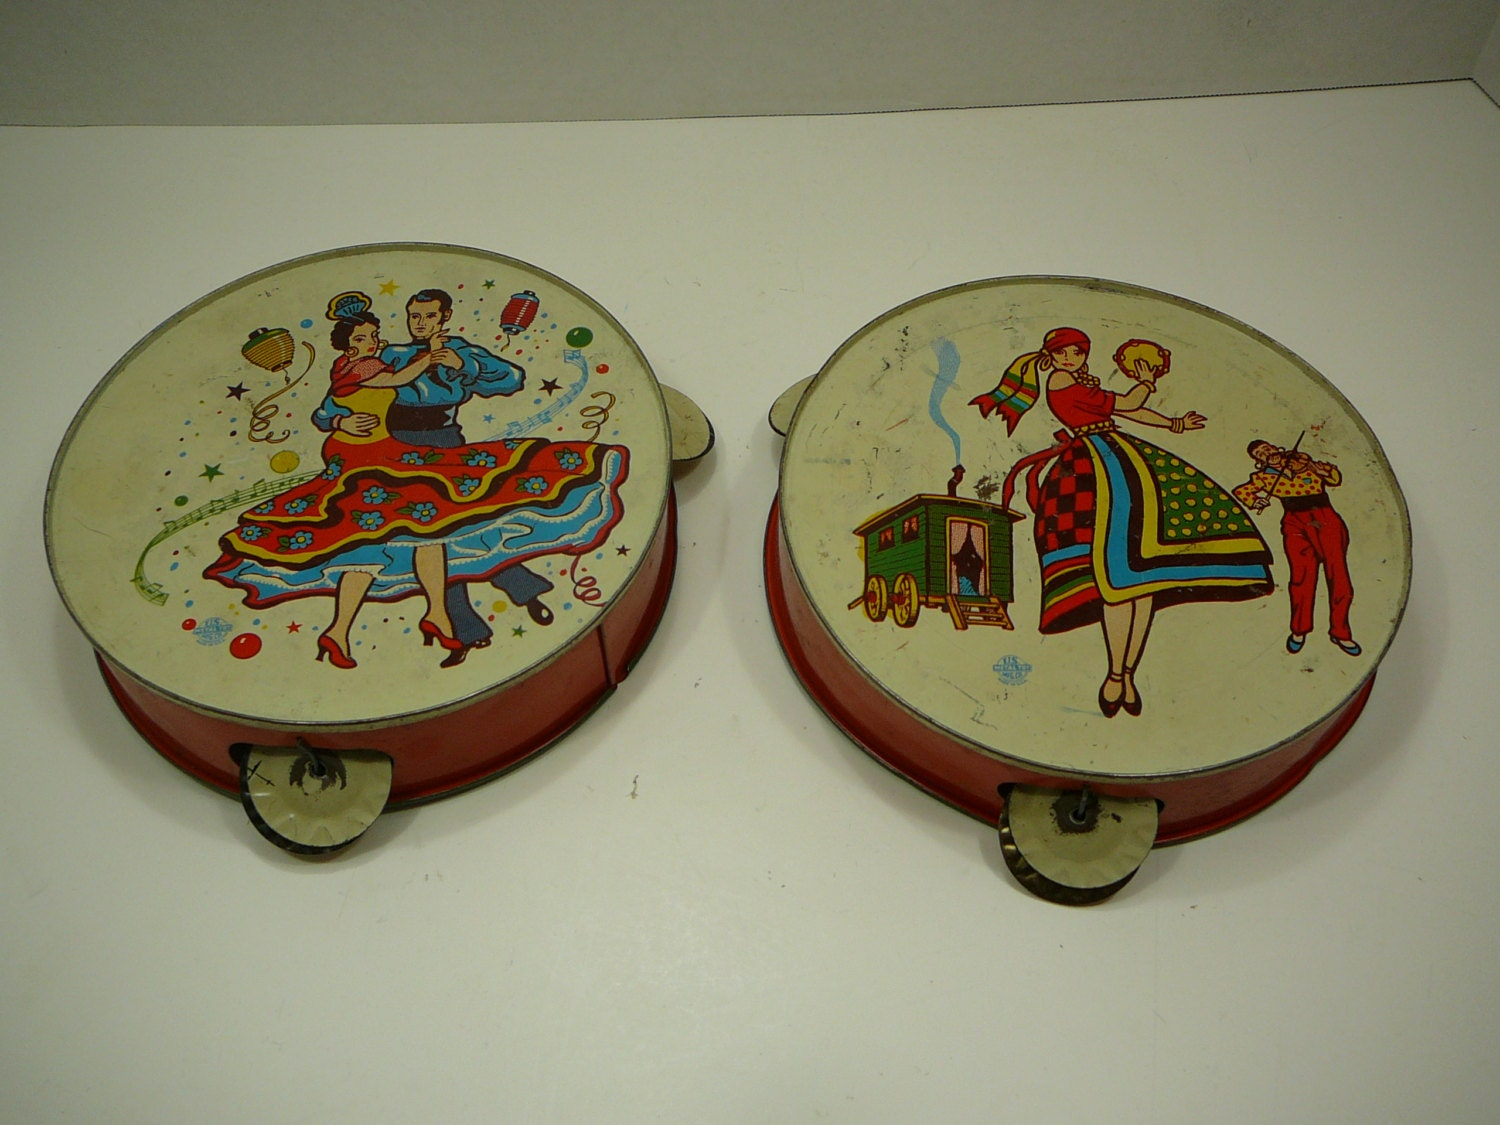 Vintage Toys From The 60s : Vintage tin toy tambourine set s kids